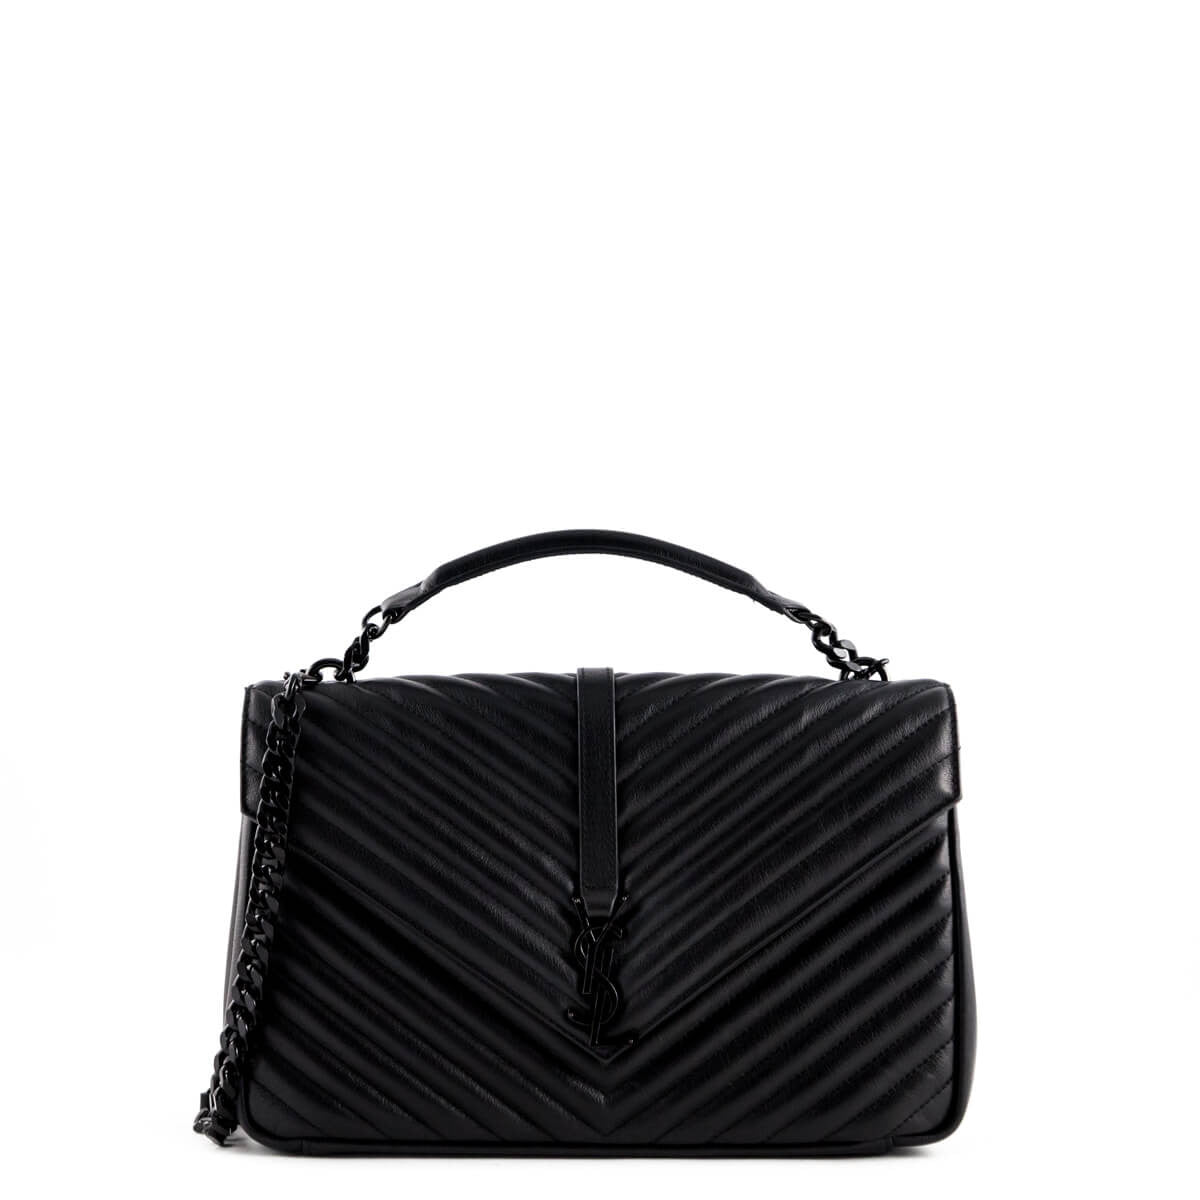 744cfc6435 Saint Laurent Black Quilted Calfskin Large Monogram College Bag - LOVE that  BAG - Preowned Authentic ...